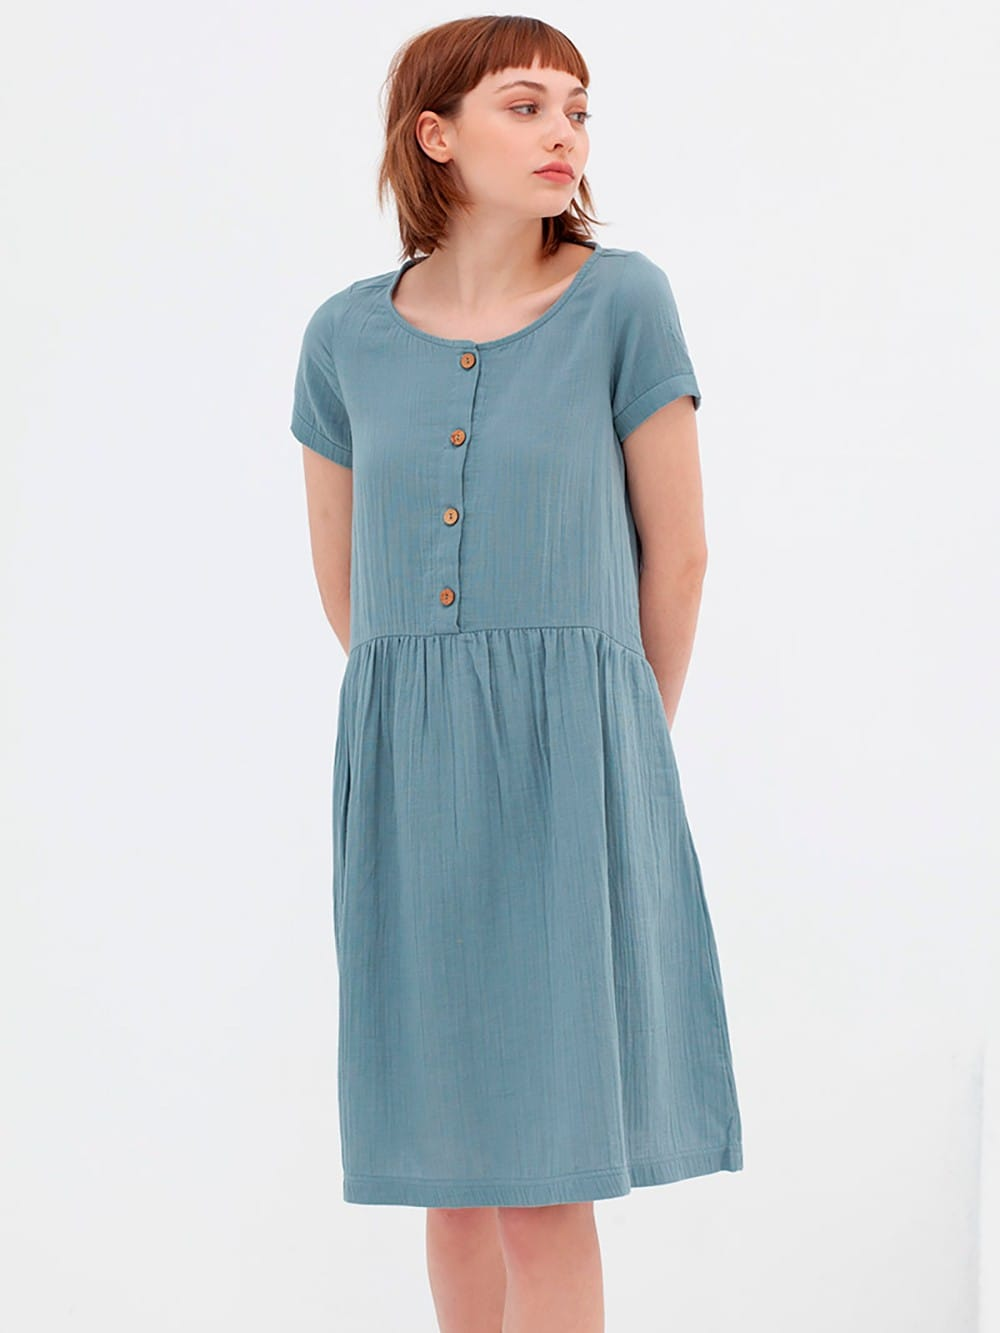 Short sleeved muslin dress-Almudena